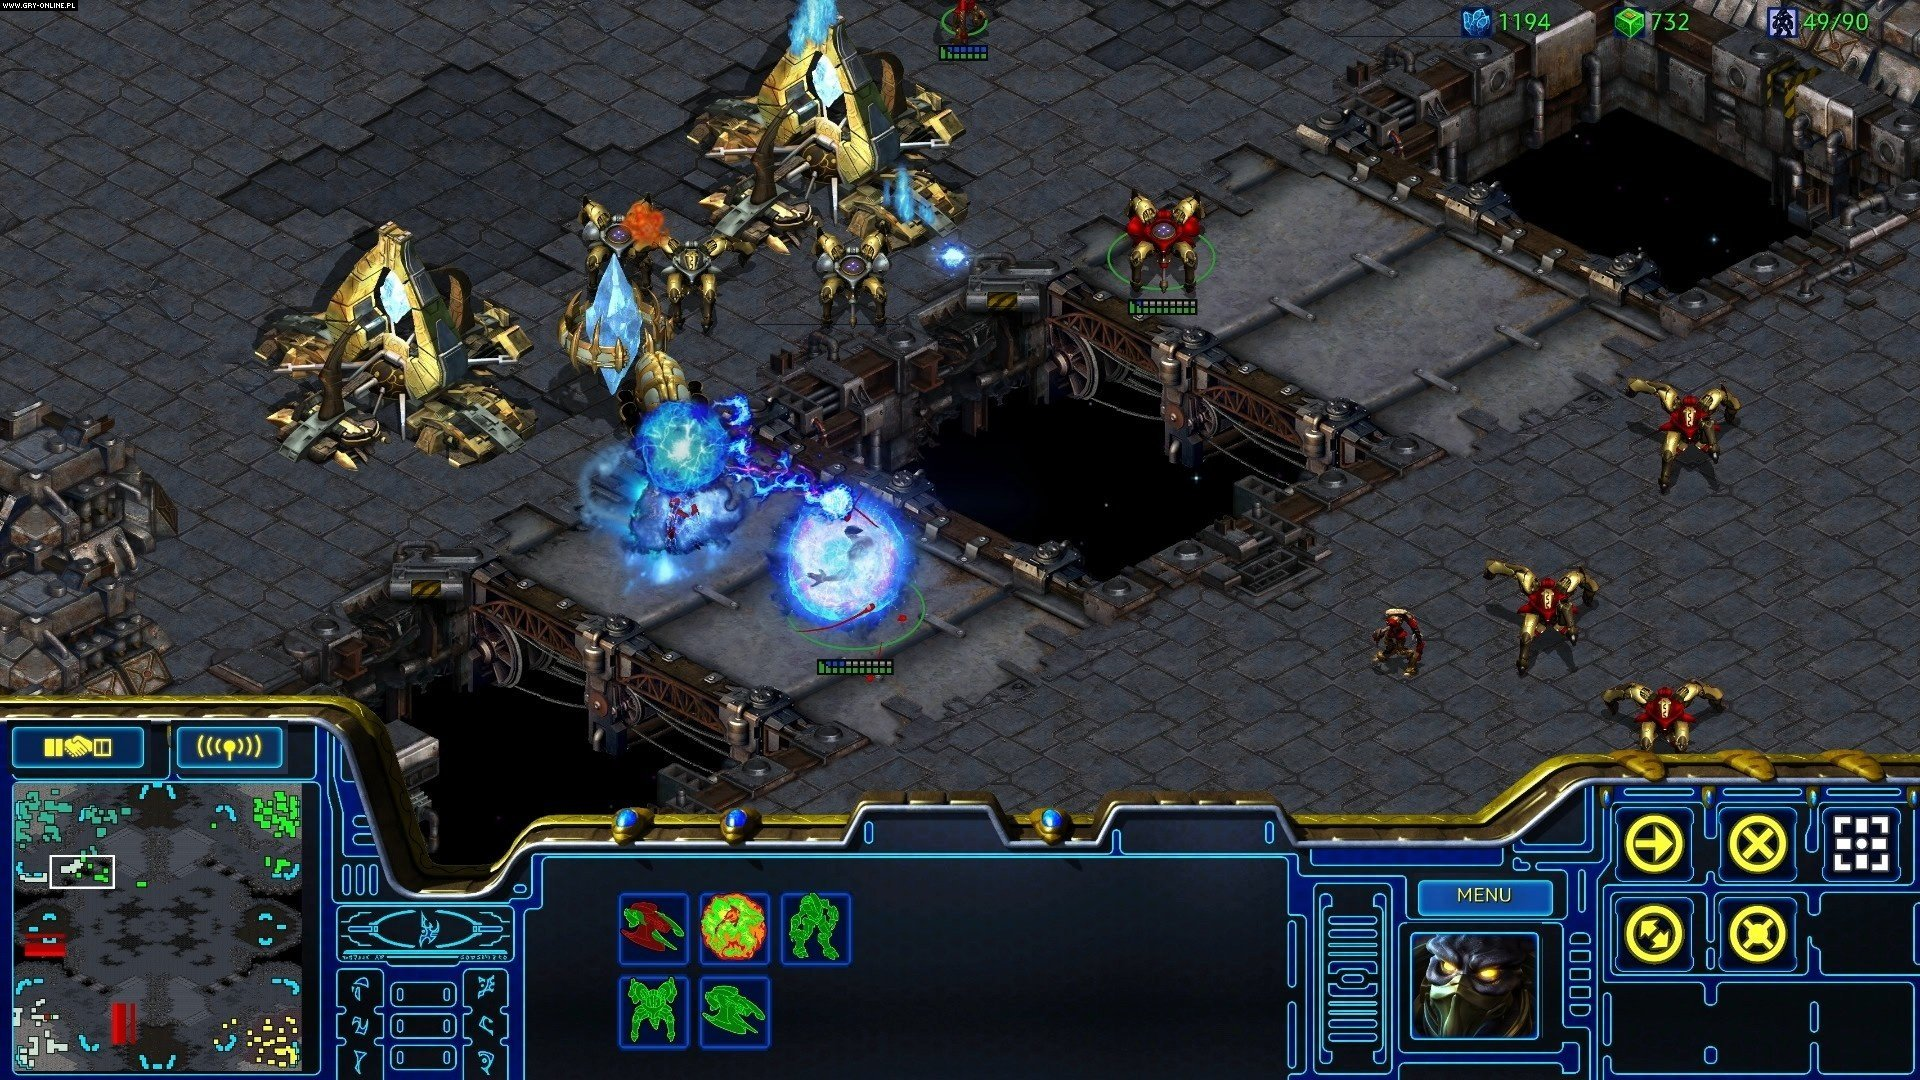 StarCraft: Remastered PC Games Image 6/15, Blizzard Entertainment